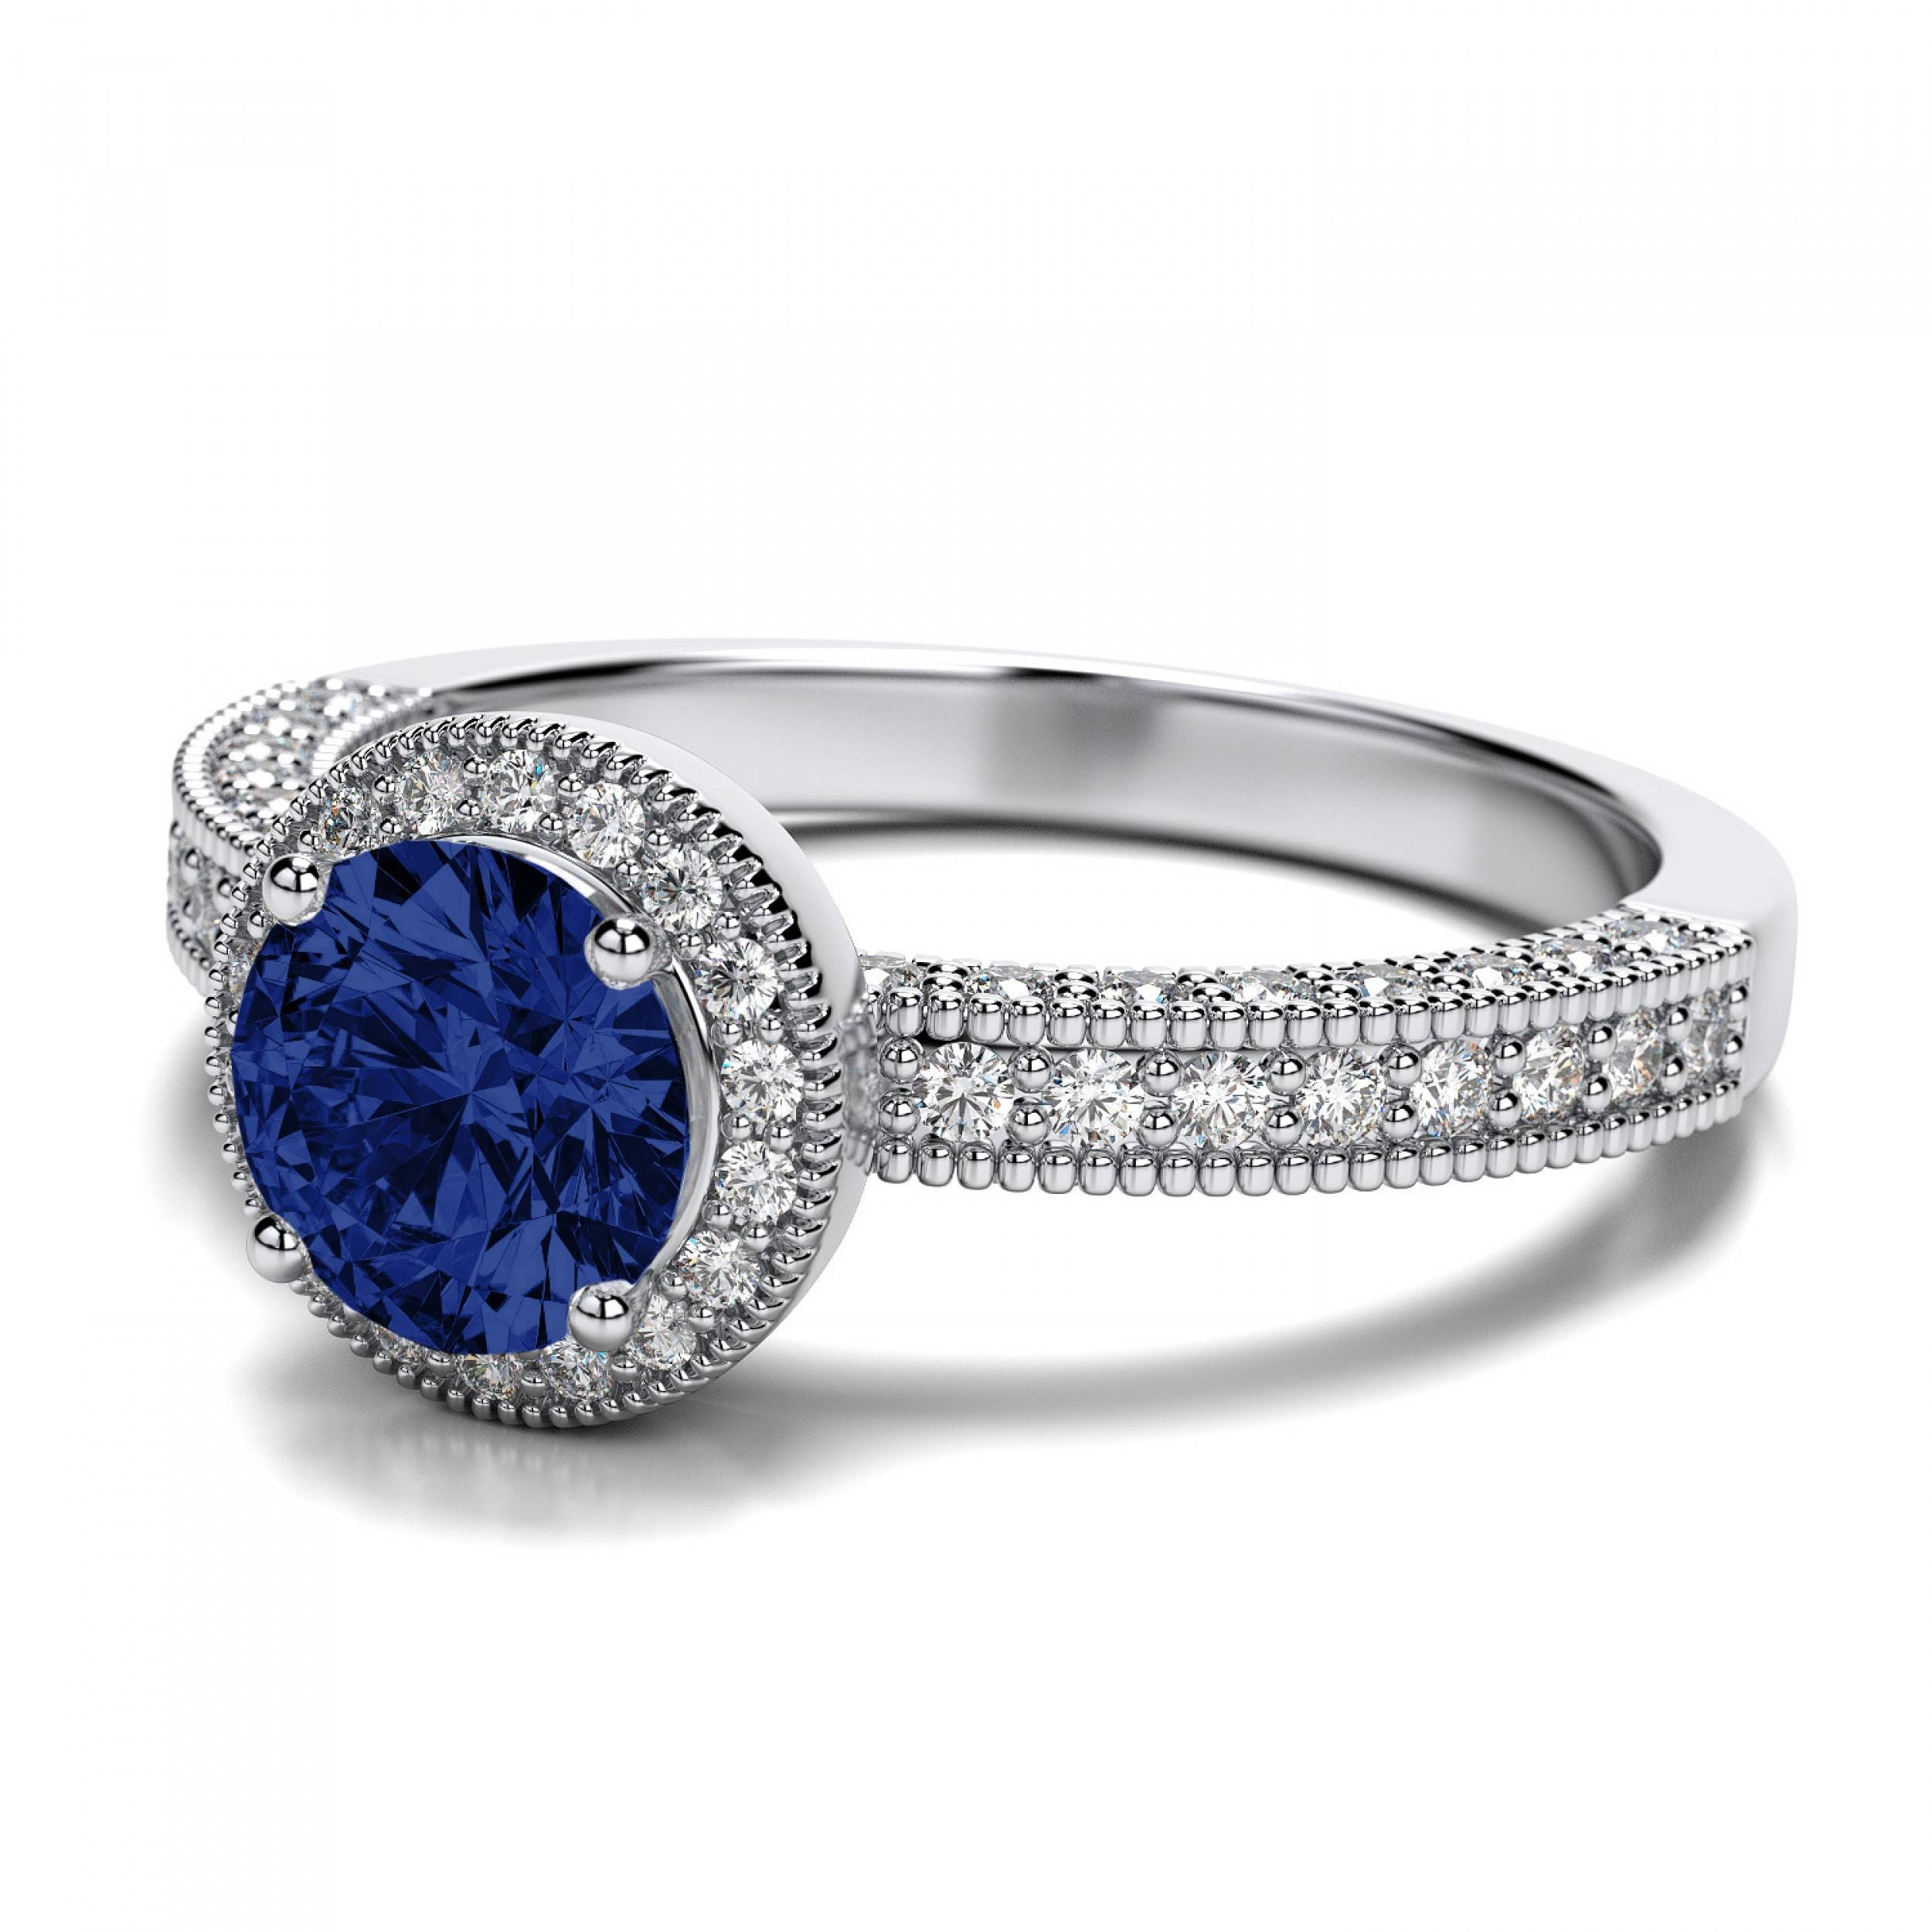 Engagement Rings : Diamond Engagement Ring With Sapphire Wedding Regarding Vintage Sapphire Wedding Bands (View 4 of 15)